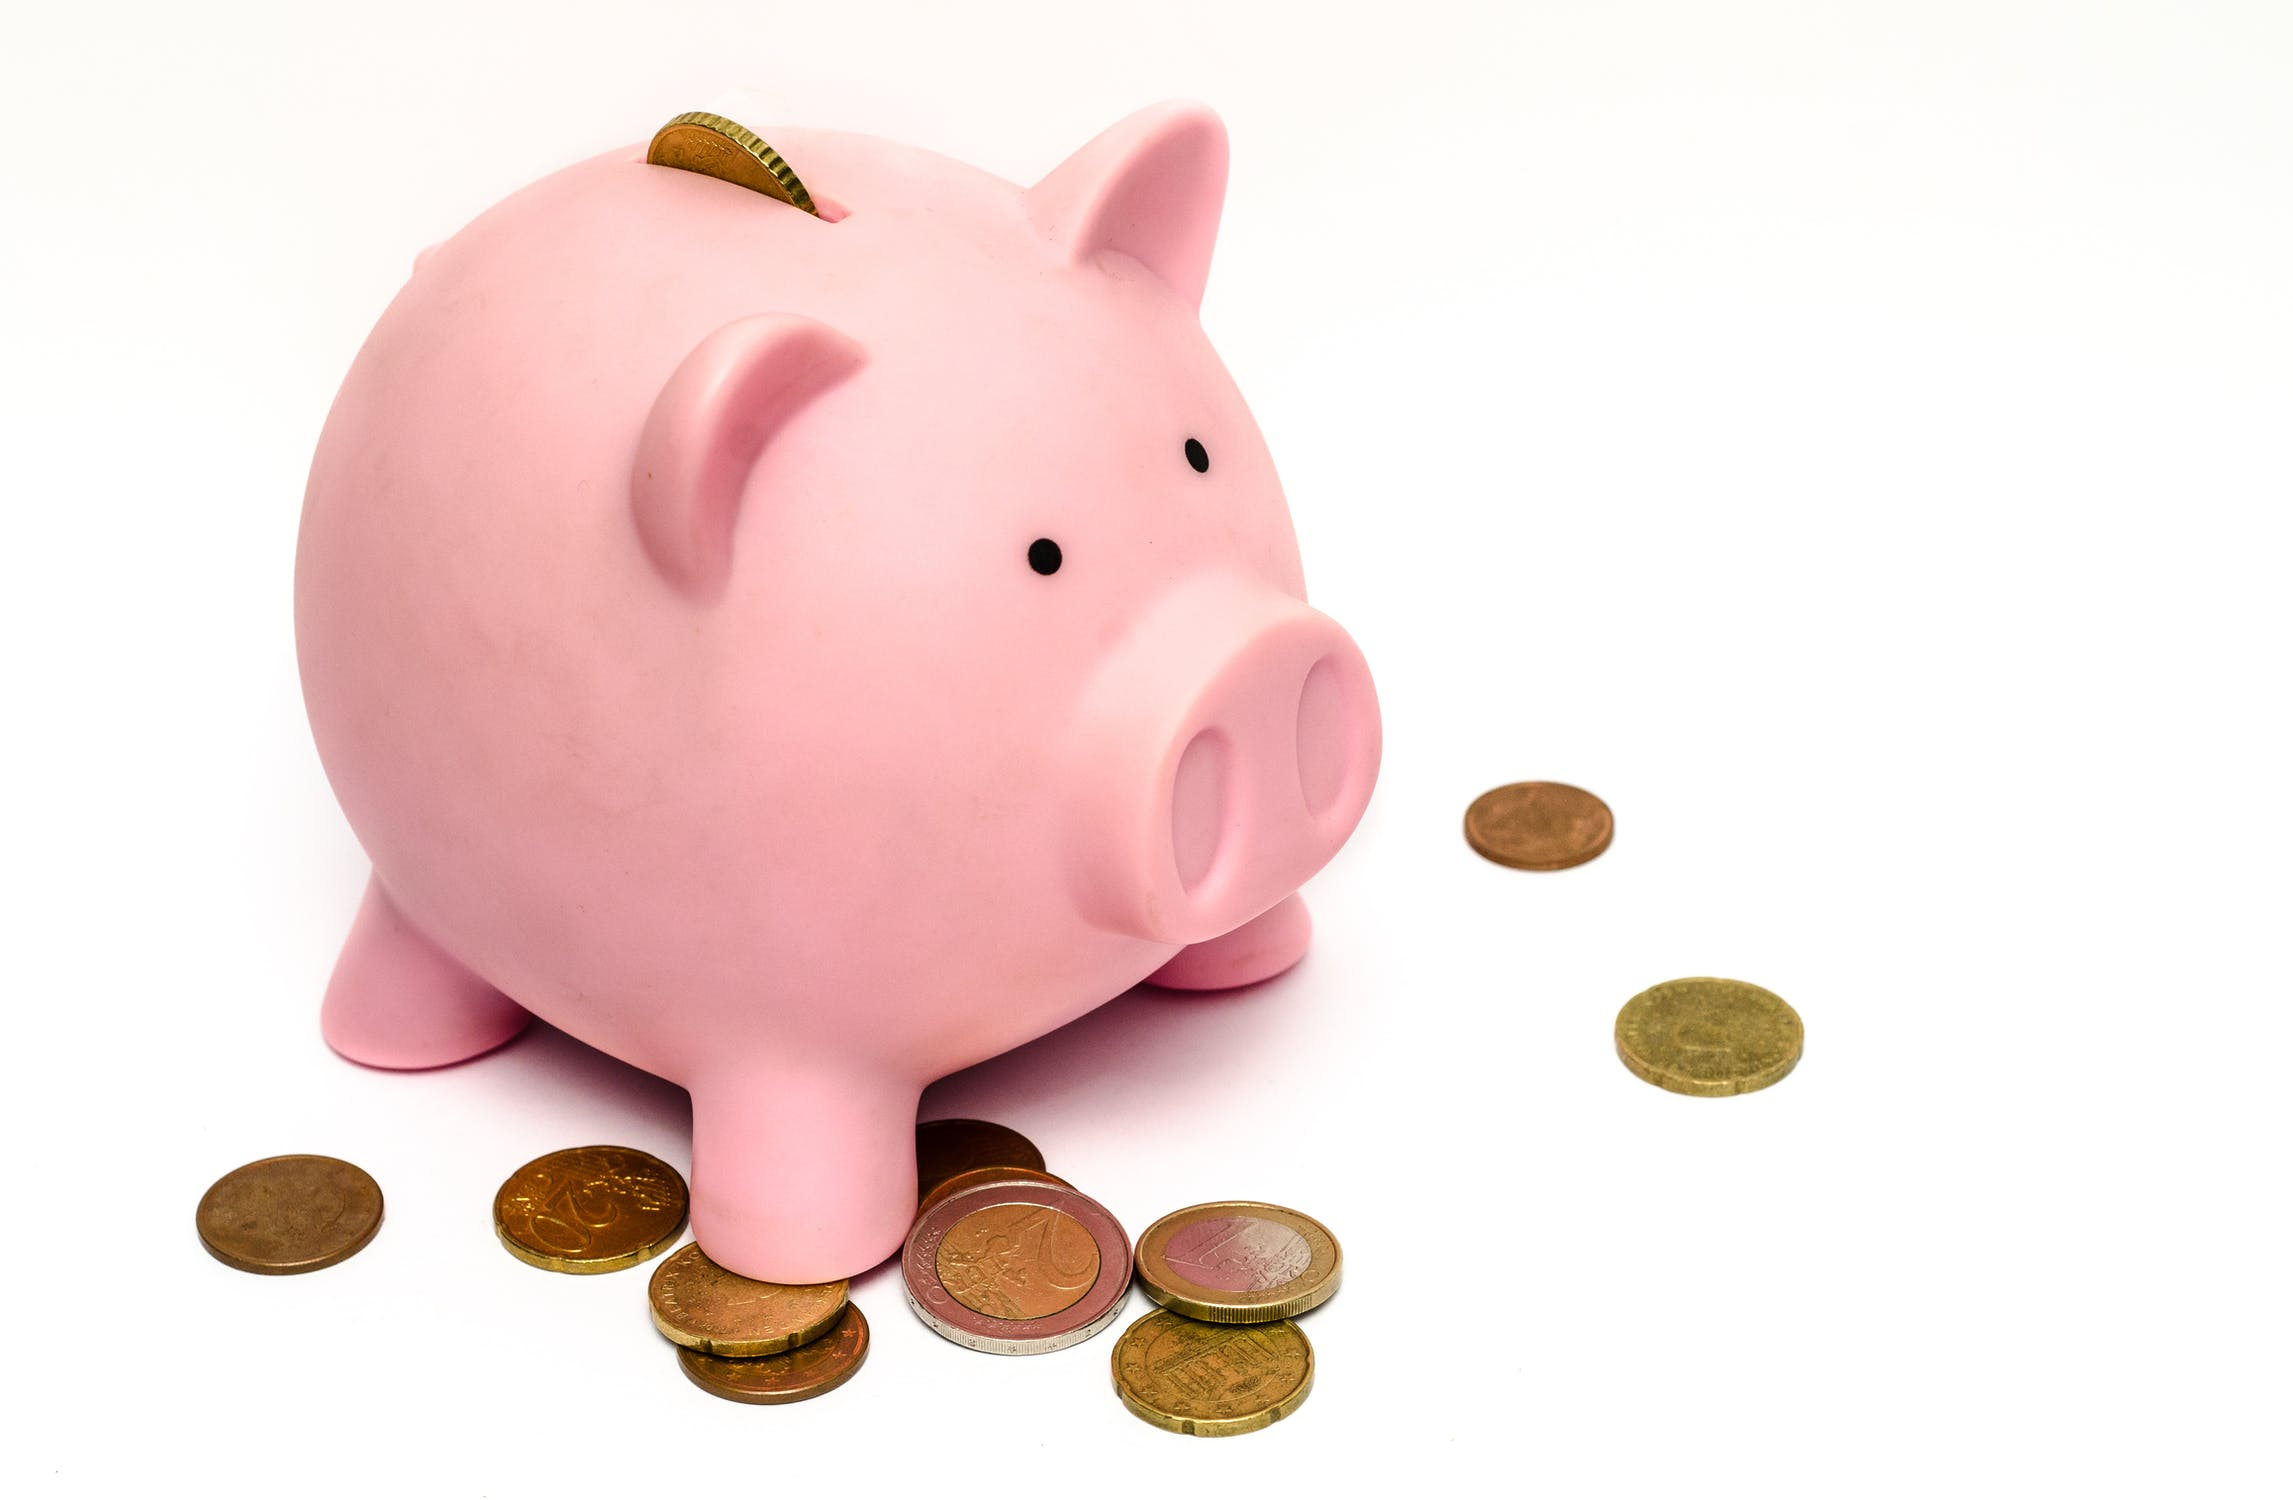 A piggy bank - saving money is important for business.